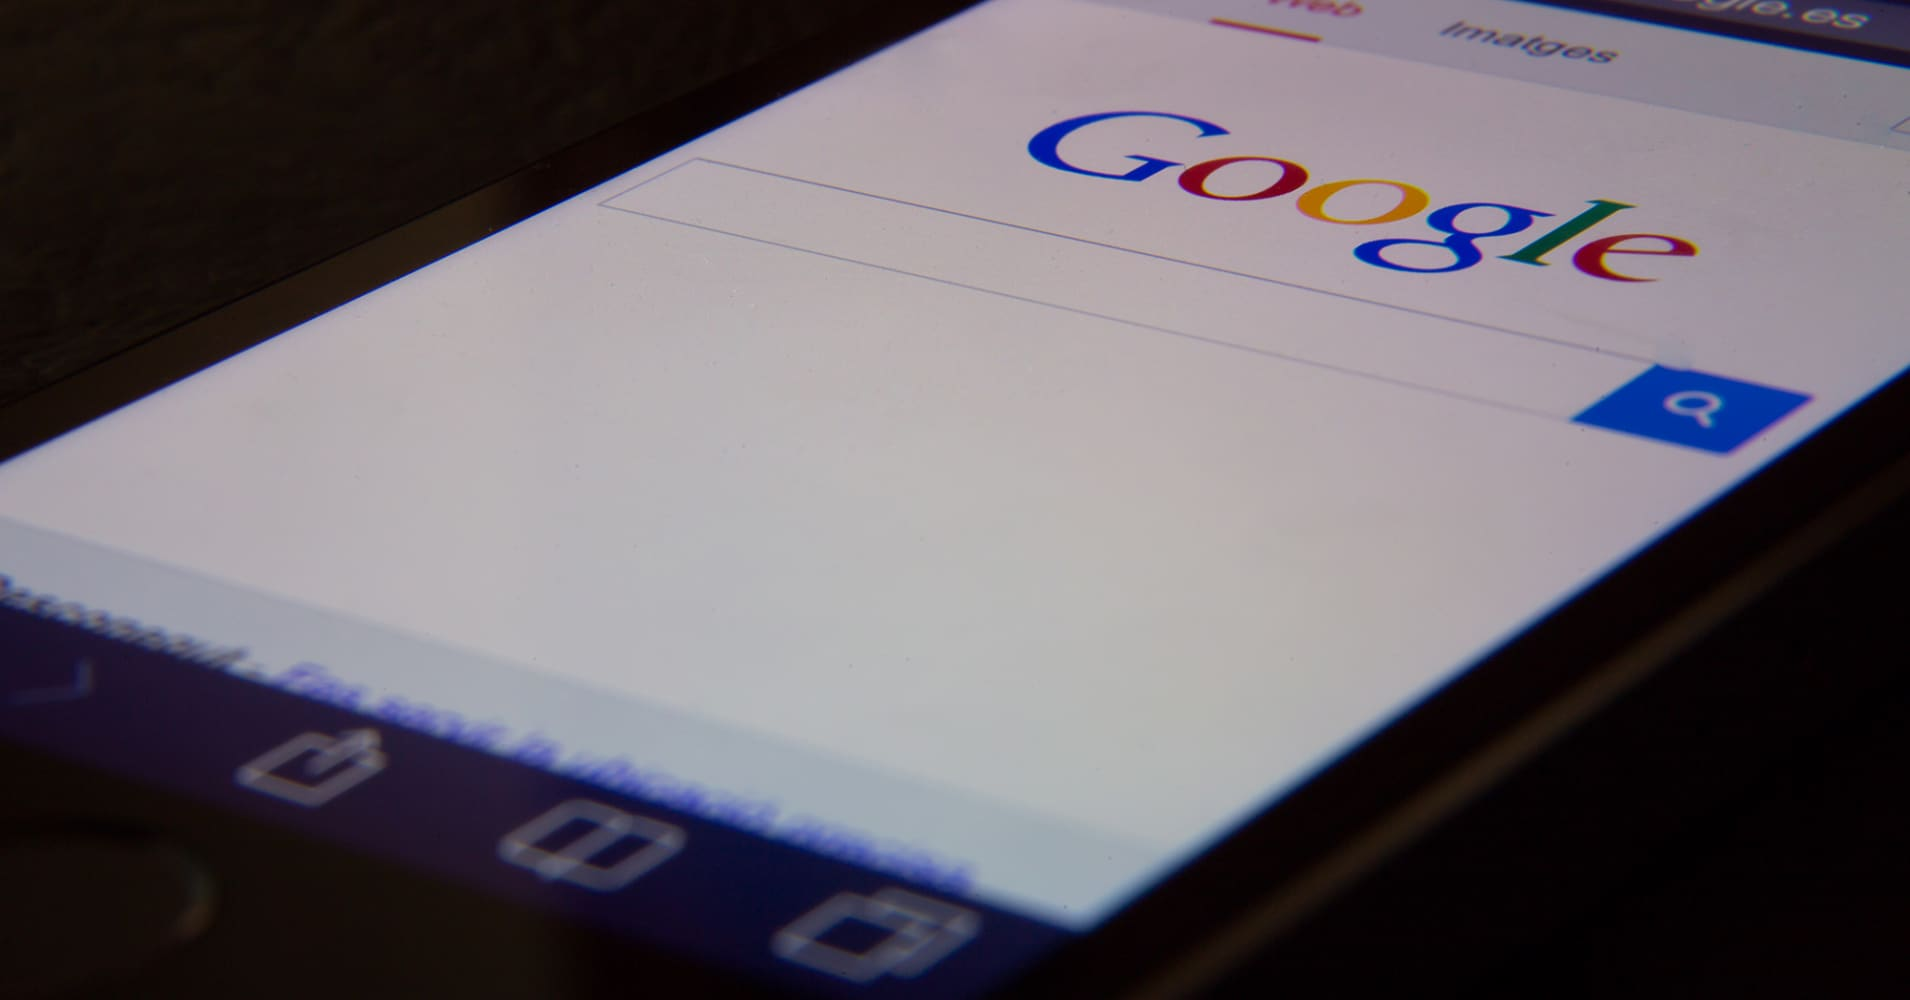 India watchdog probes accusations that Google abused Android: Sources